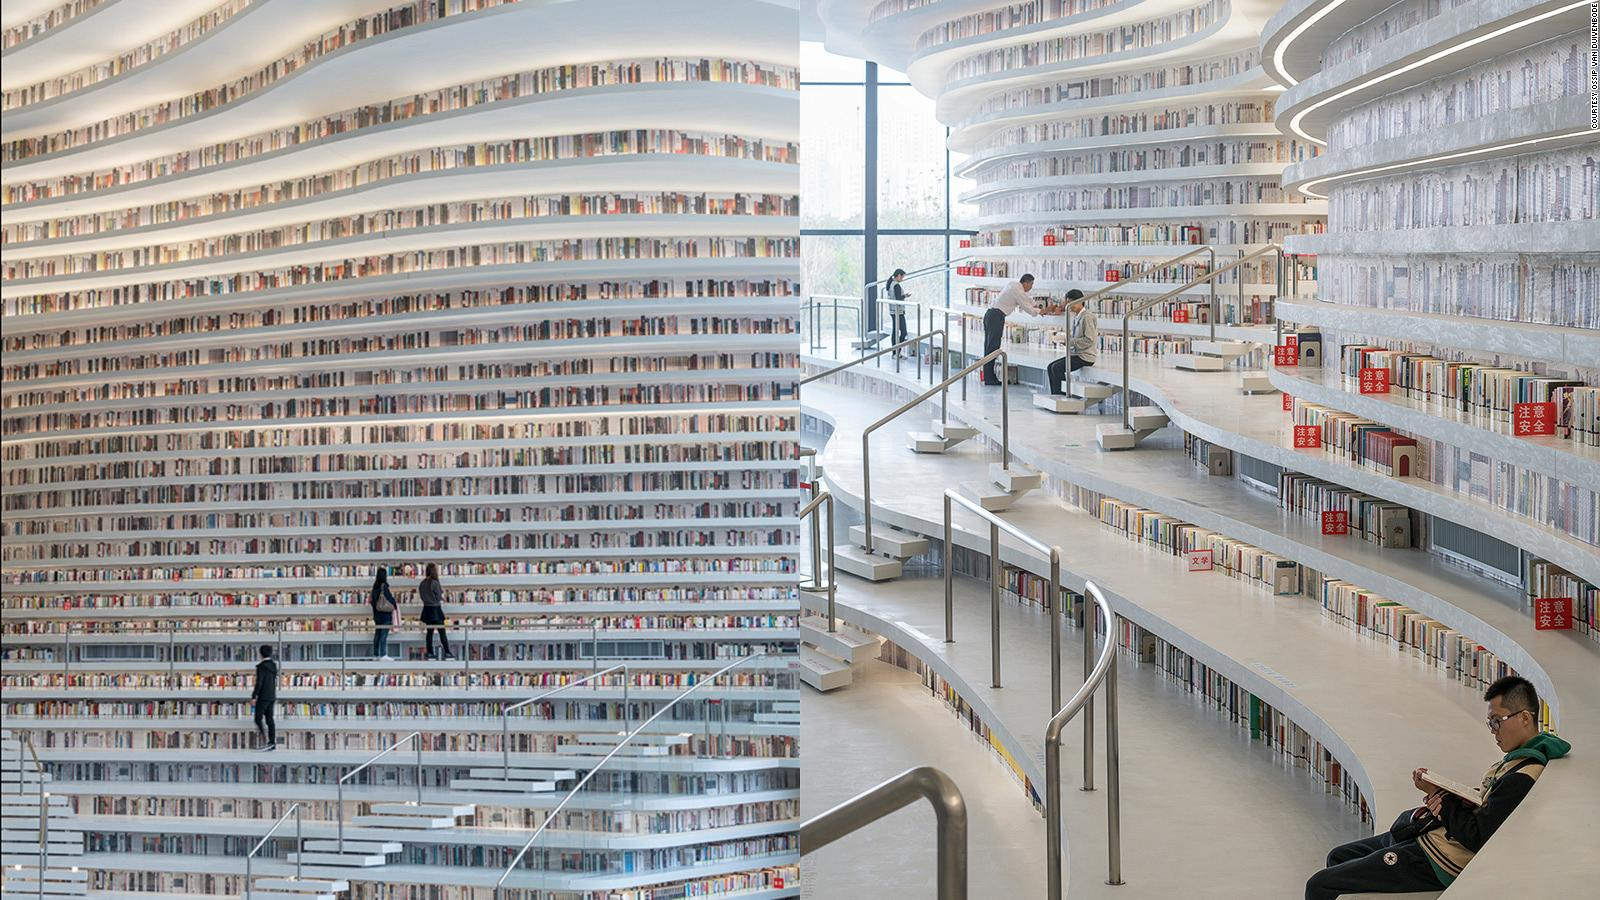 New Library In Tianjin China Looks Out Of This World Cnn